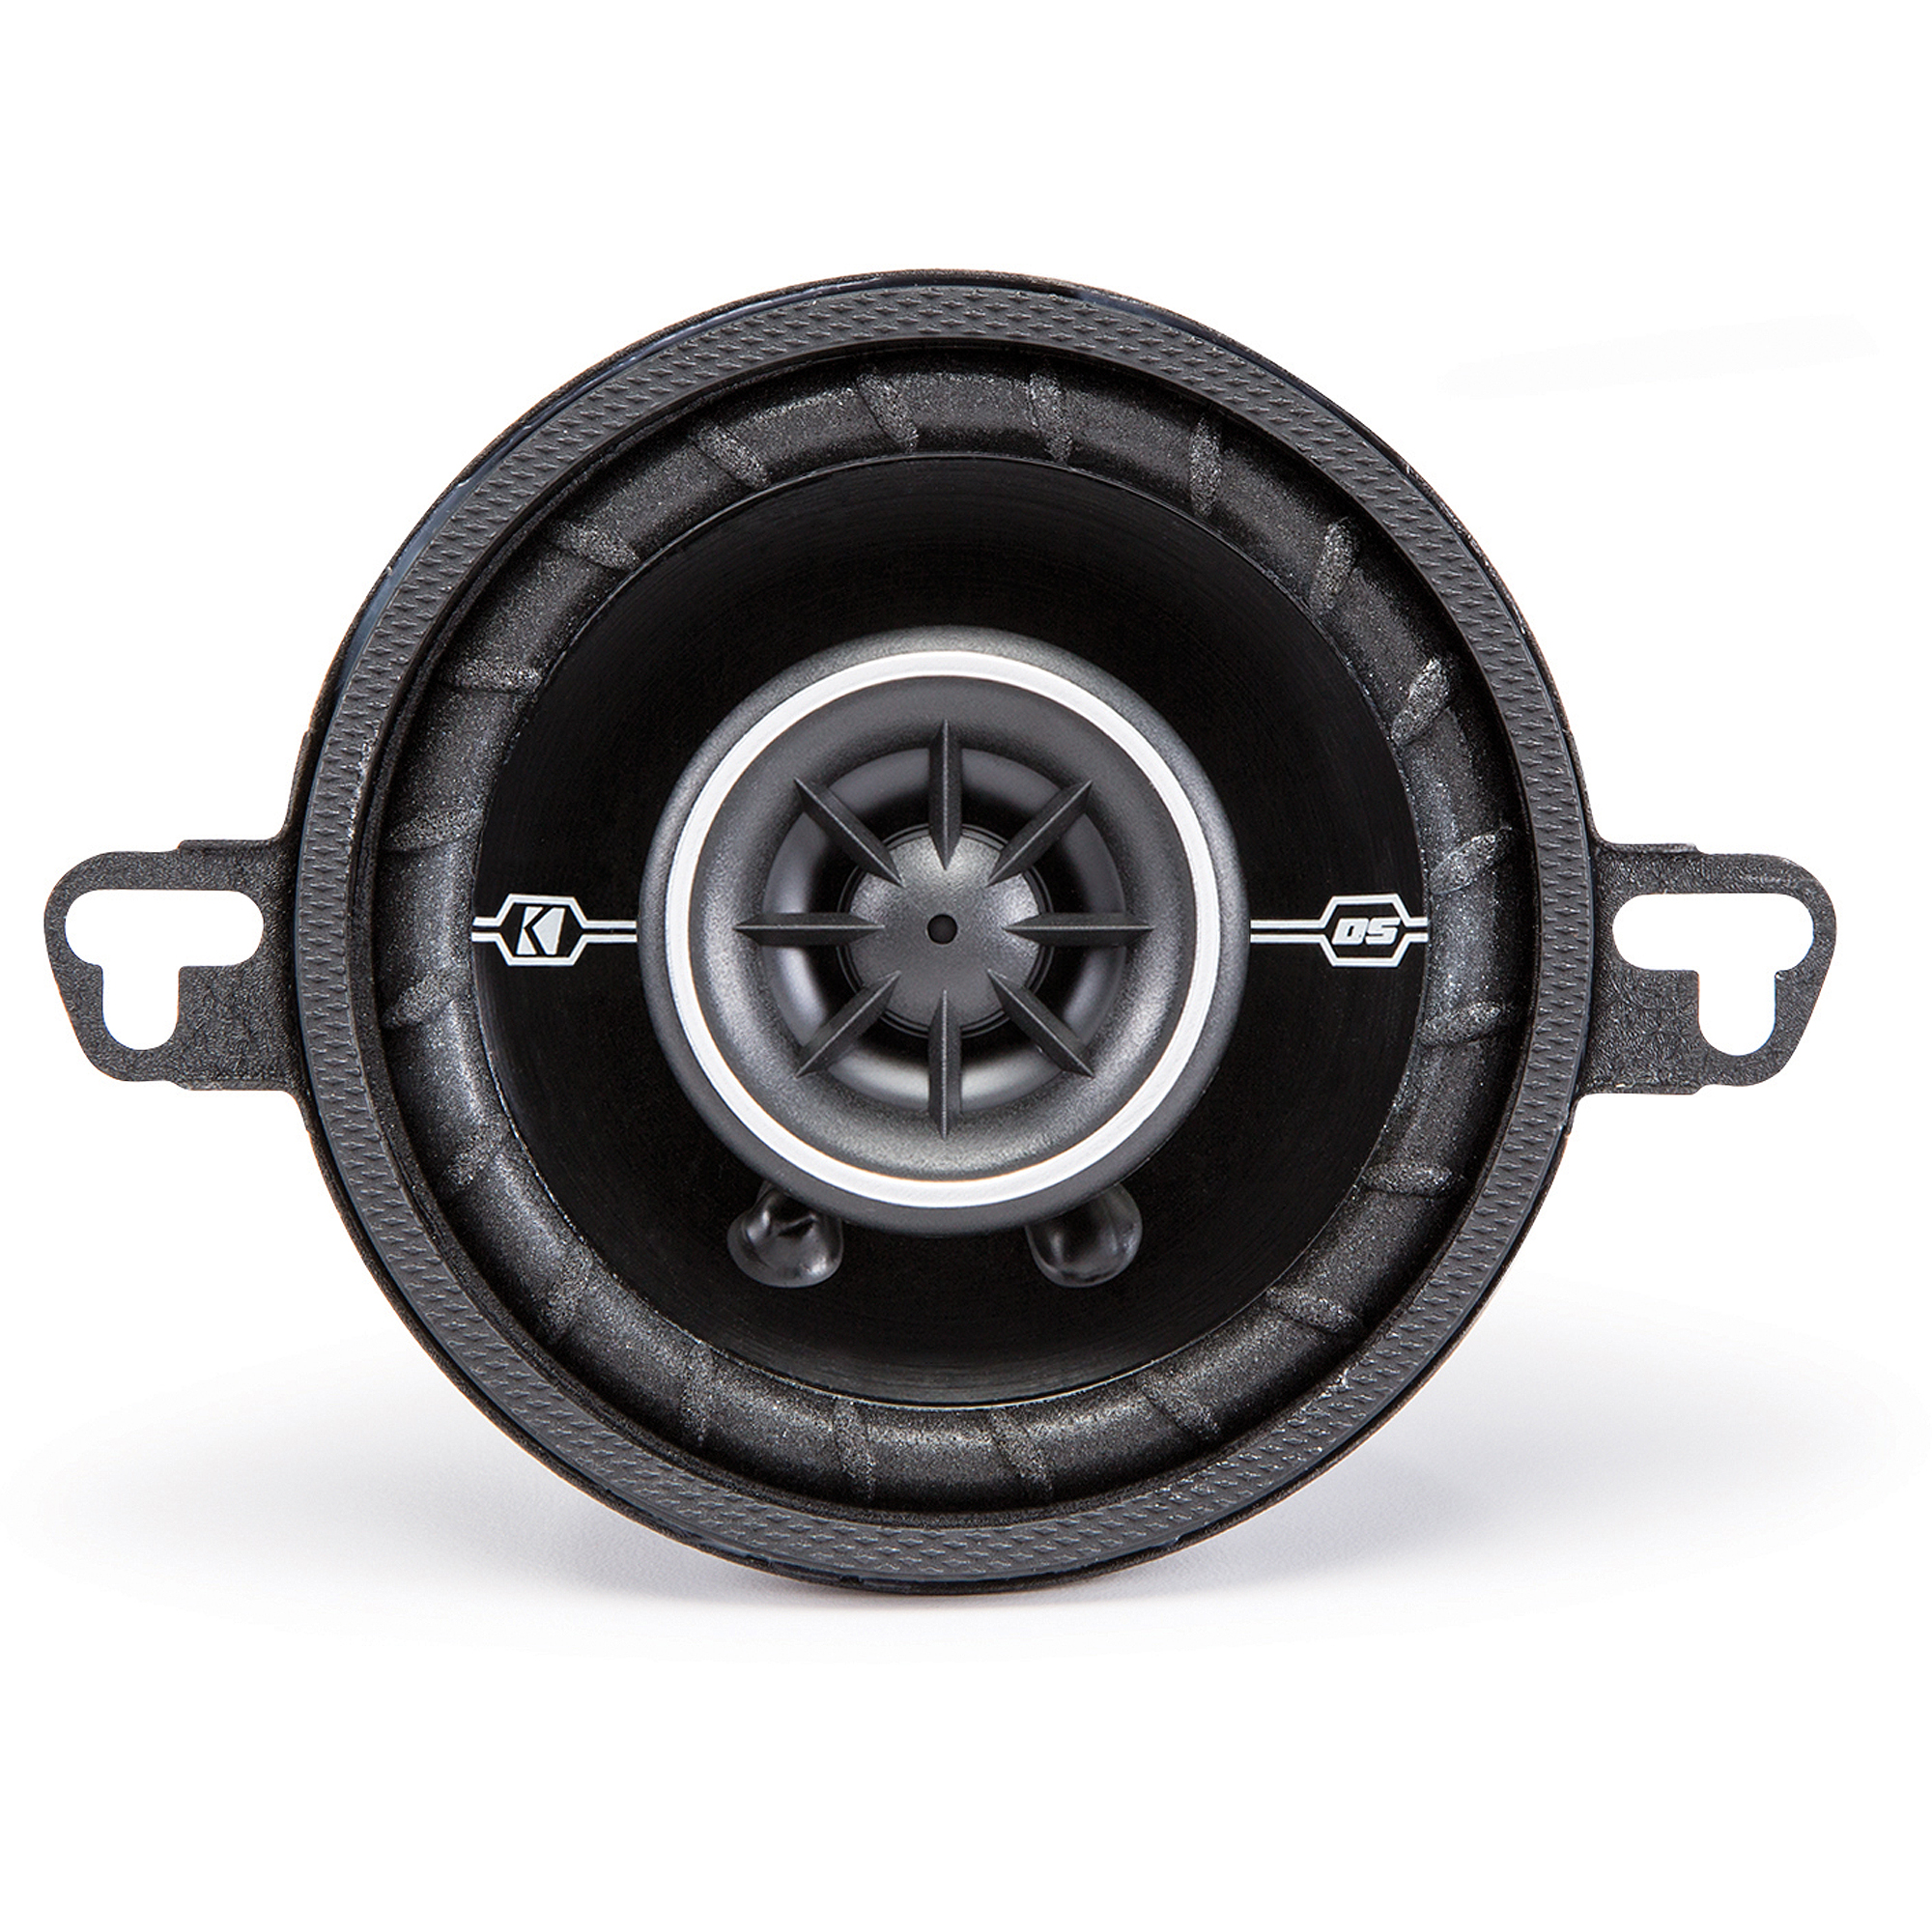 "Kicker DSC35 3.5"" 4-Ohm Coaxial Speakers with 1/2"" Tweeters"